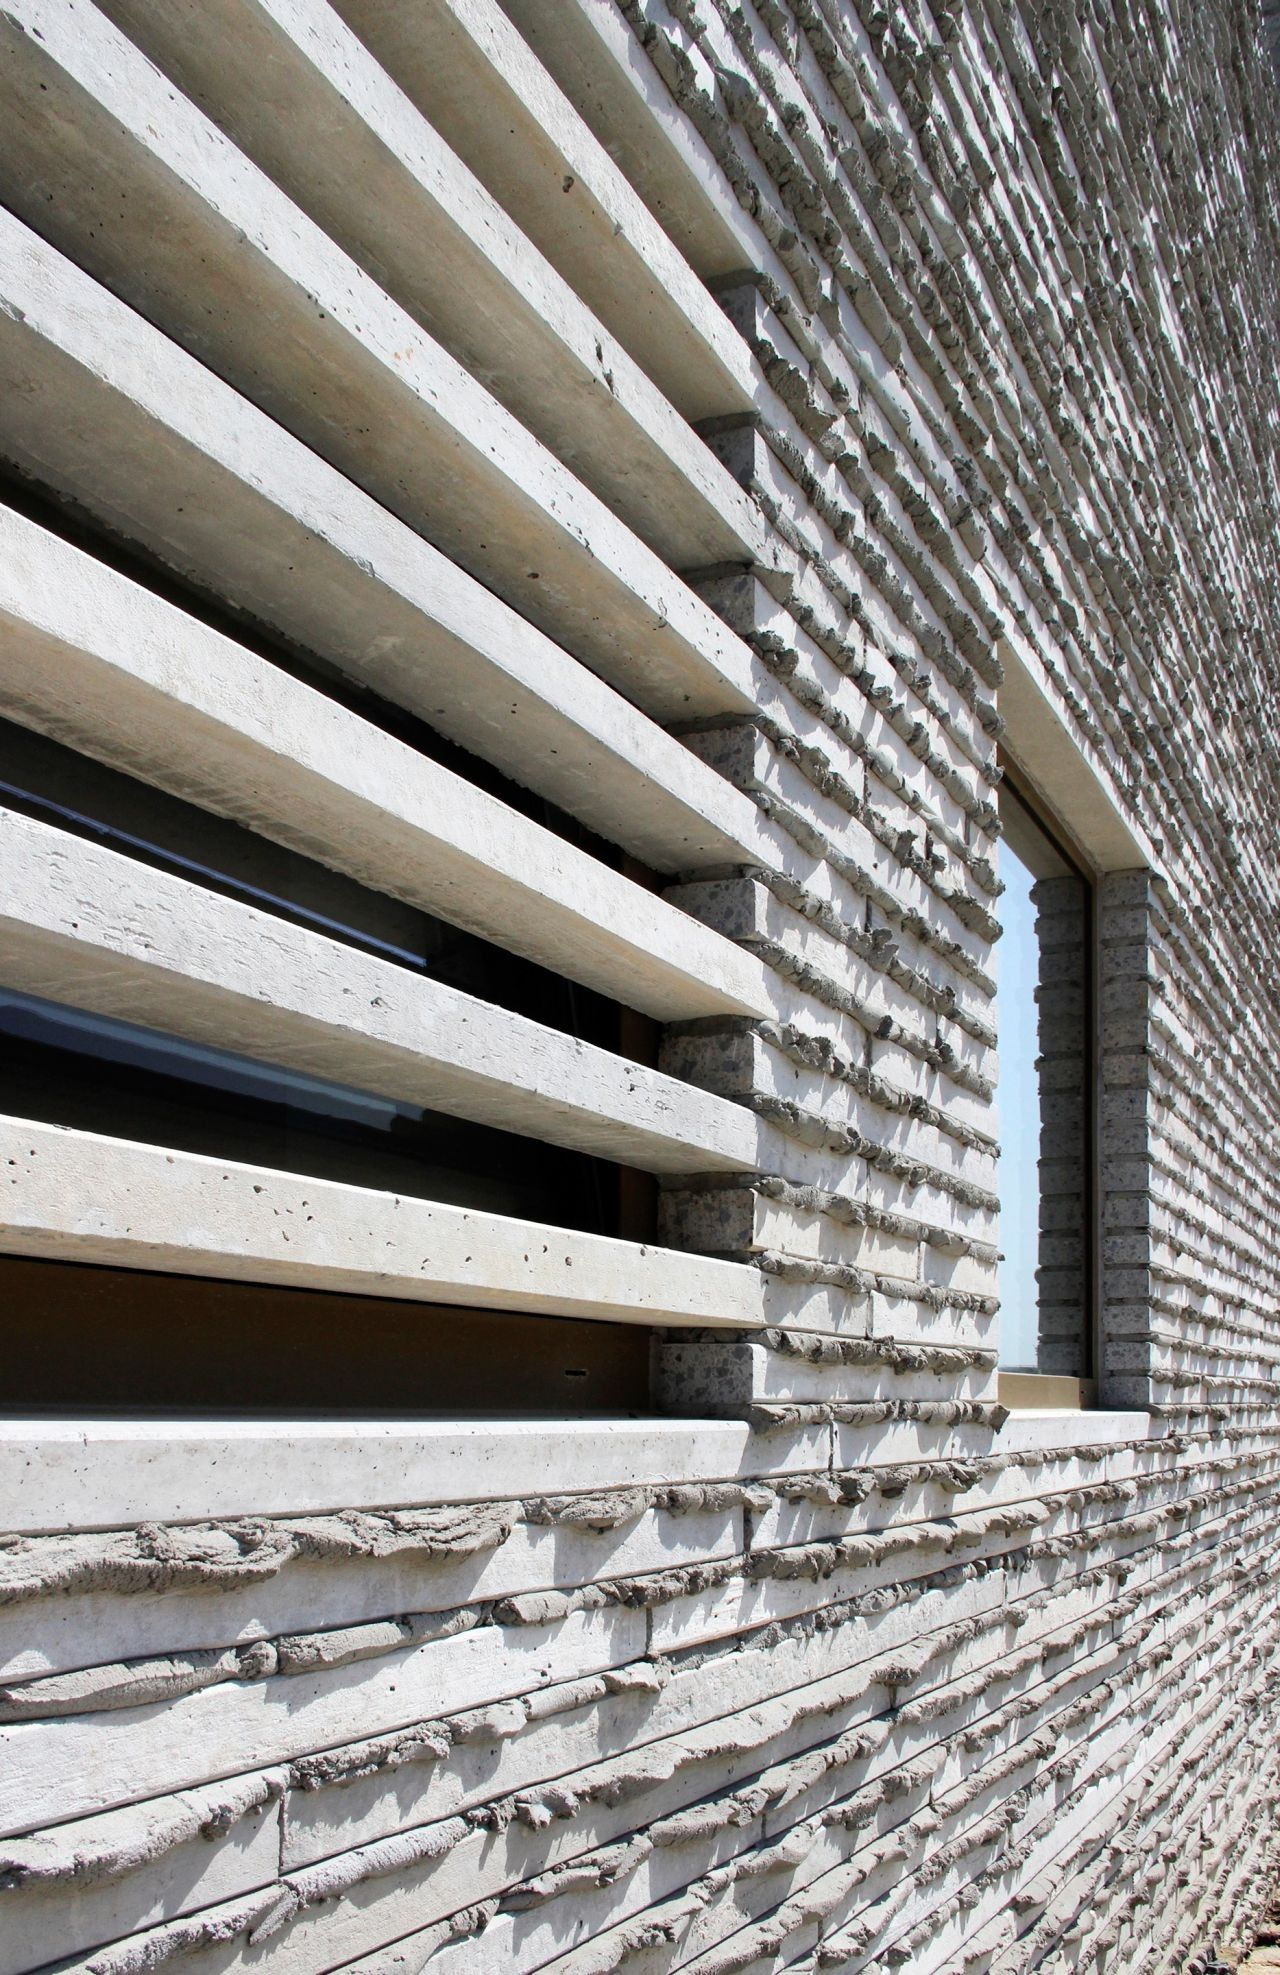 Gallery Wall House And Rol 4 Concrete Architecture Architecture Details Architecture Exterior